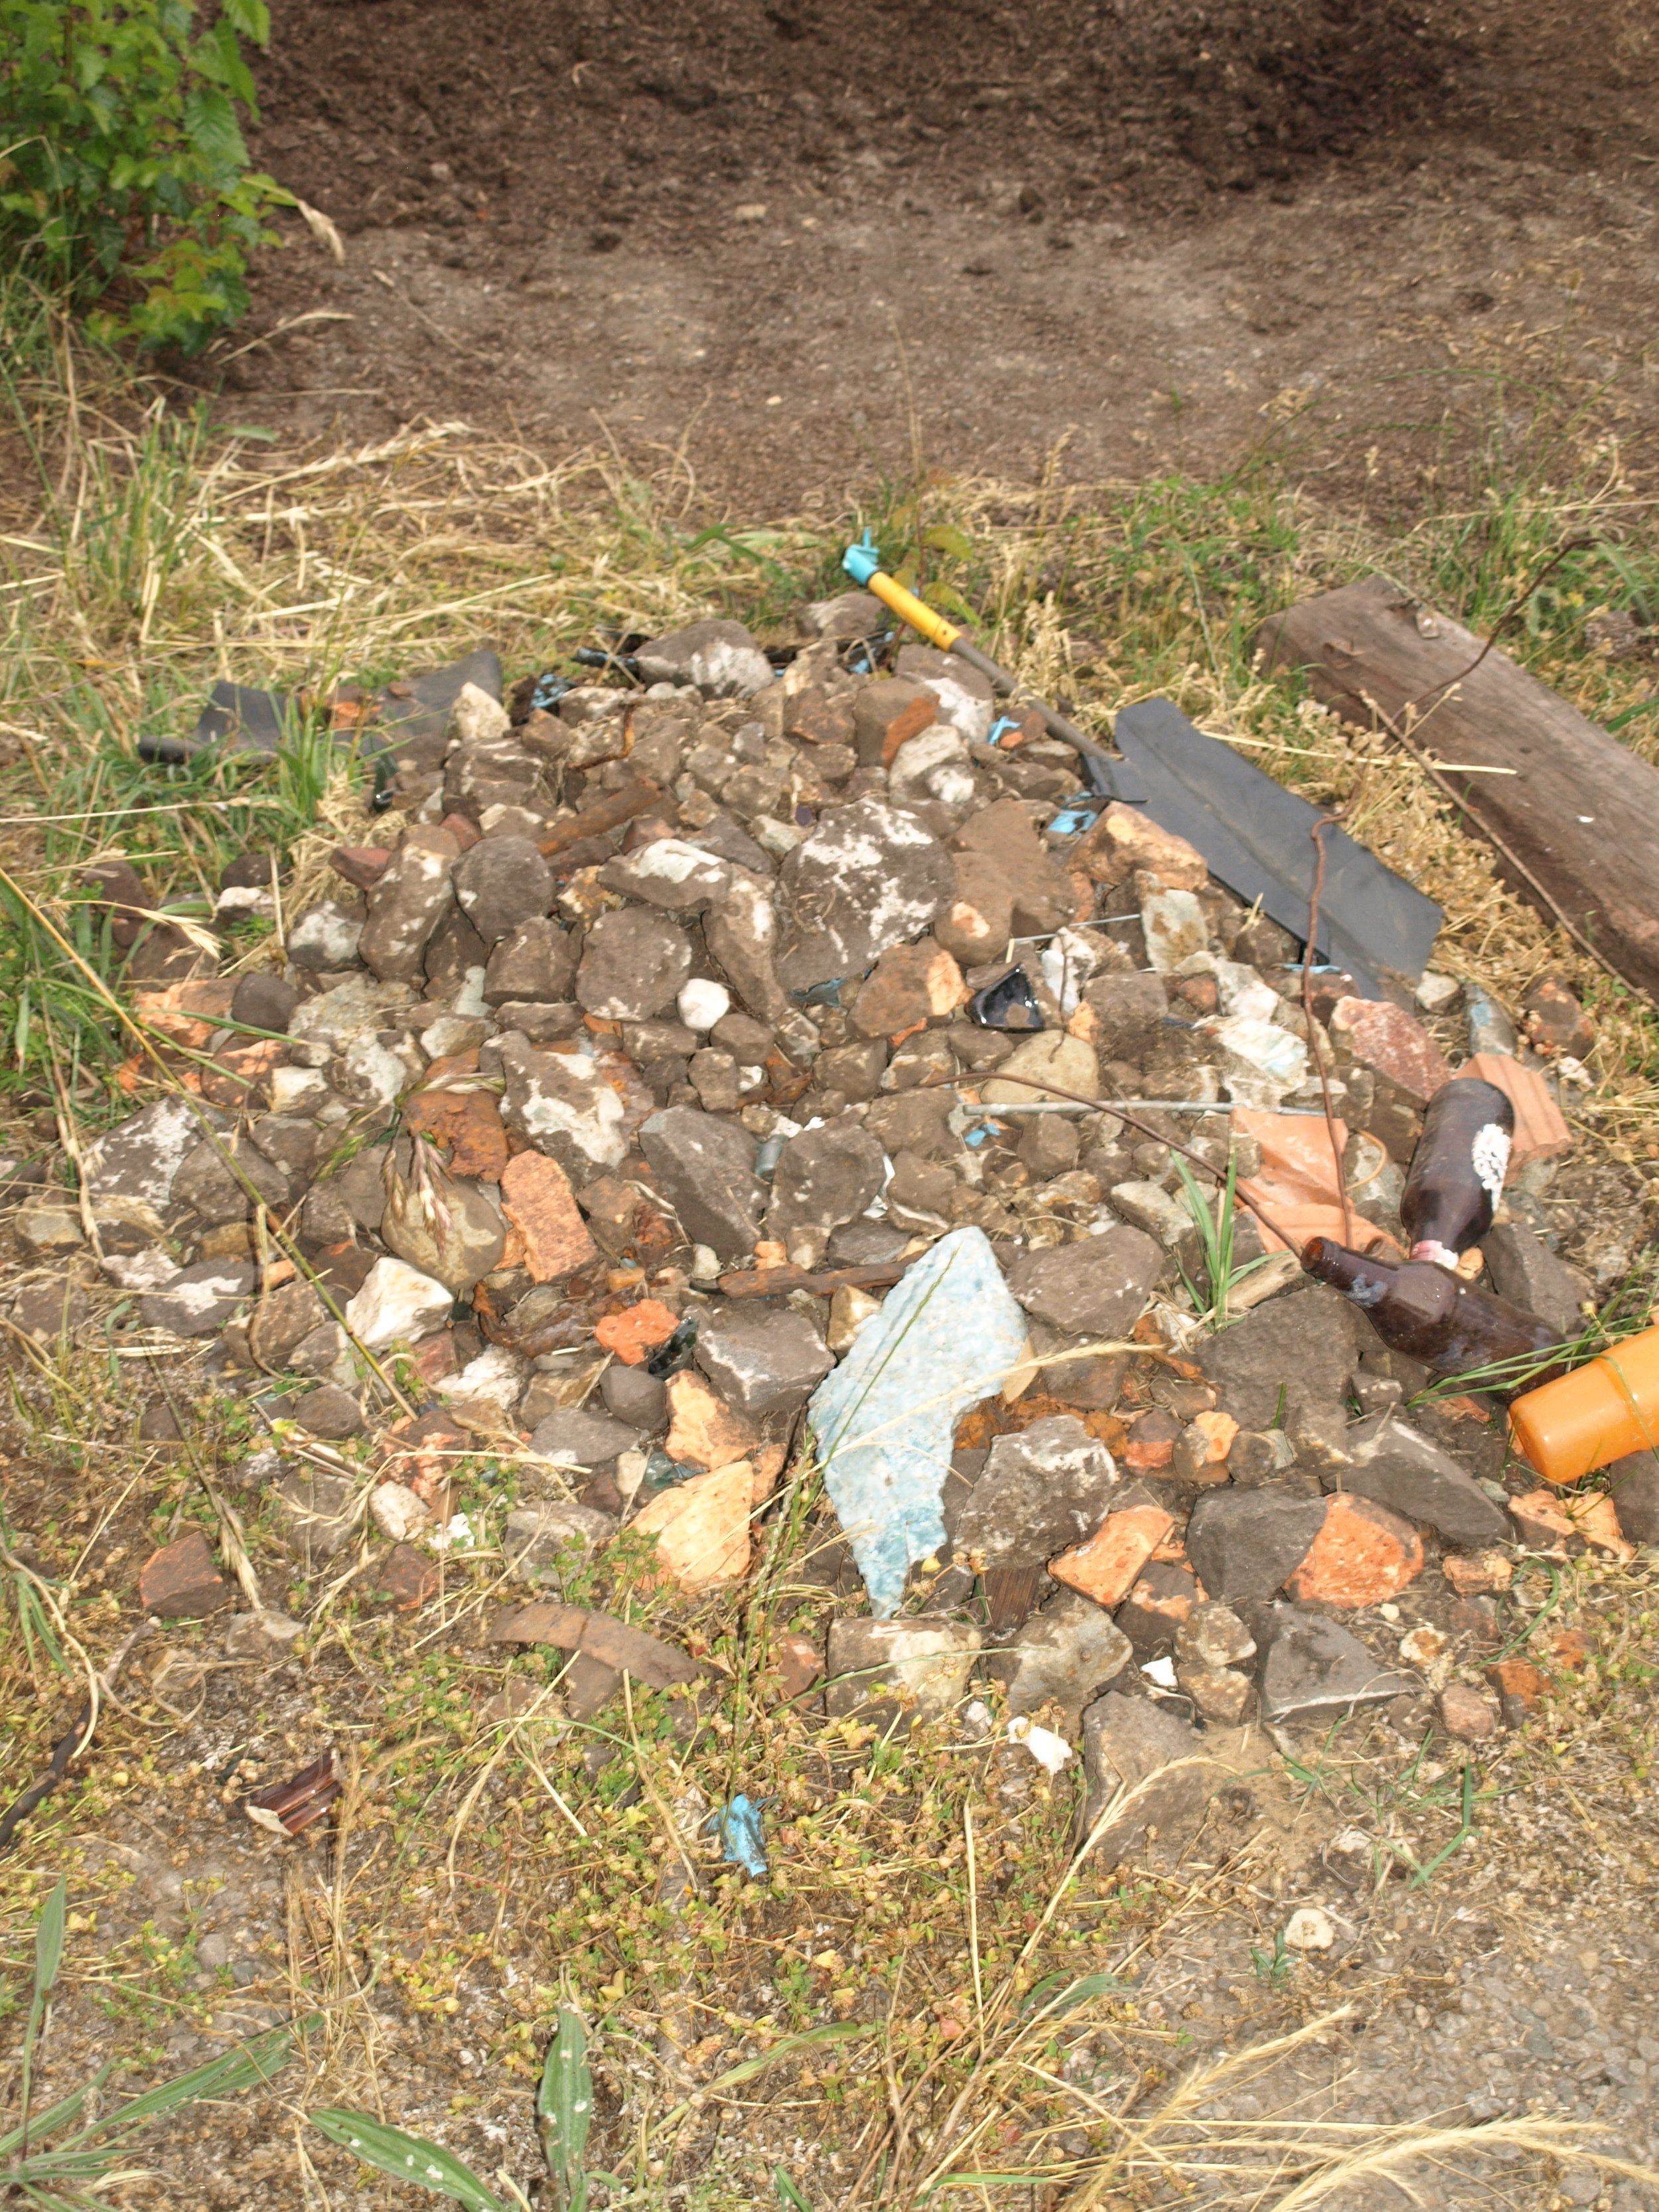 the beginning of the rubble pile, it can only get bigger